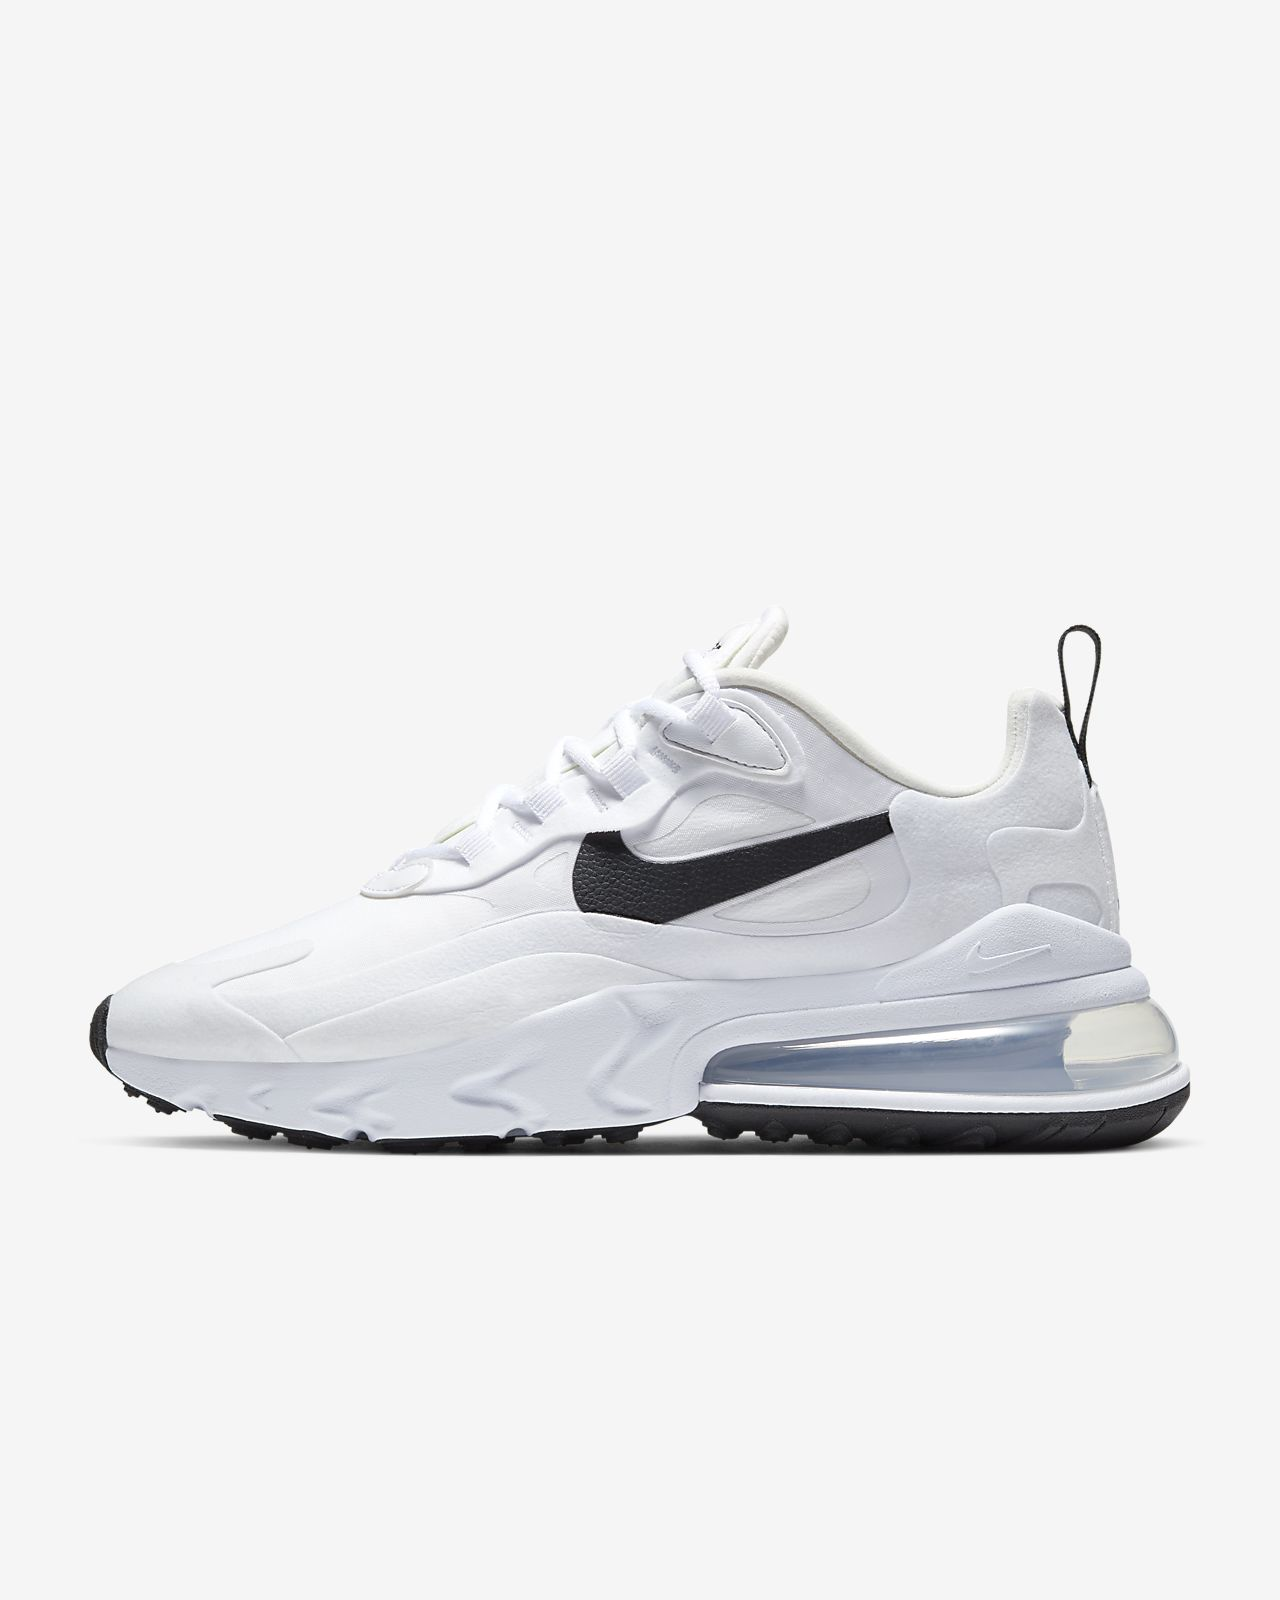 air max 270 react white and black